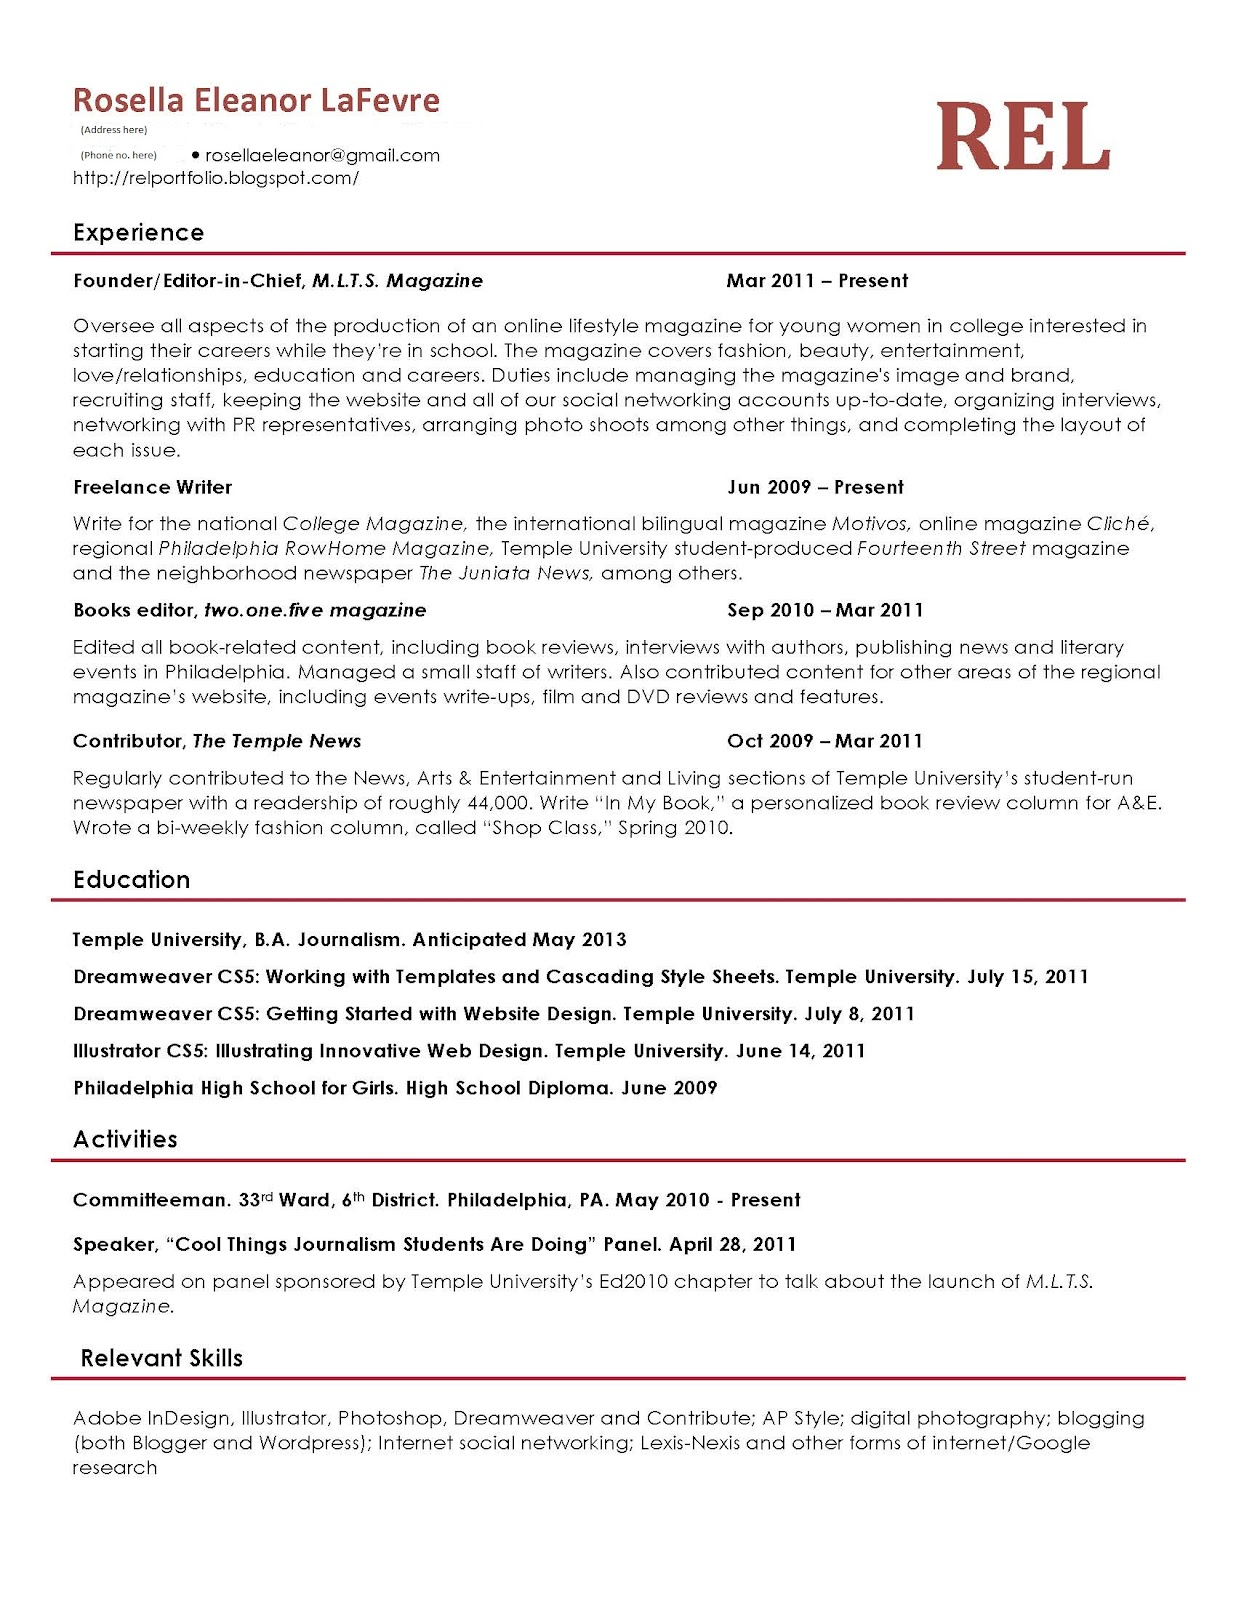 Resume Sample Resume For Journalism Student i get someone to do my assignments buy essay of top quality broadcast journalism resume velvetjobs